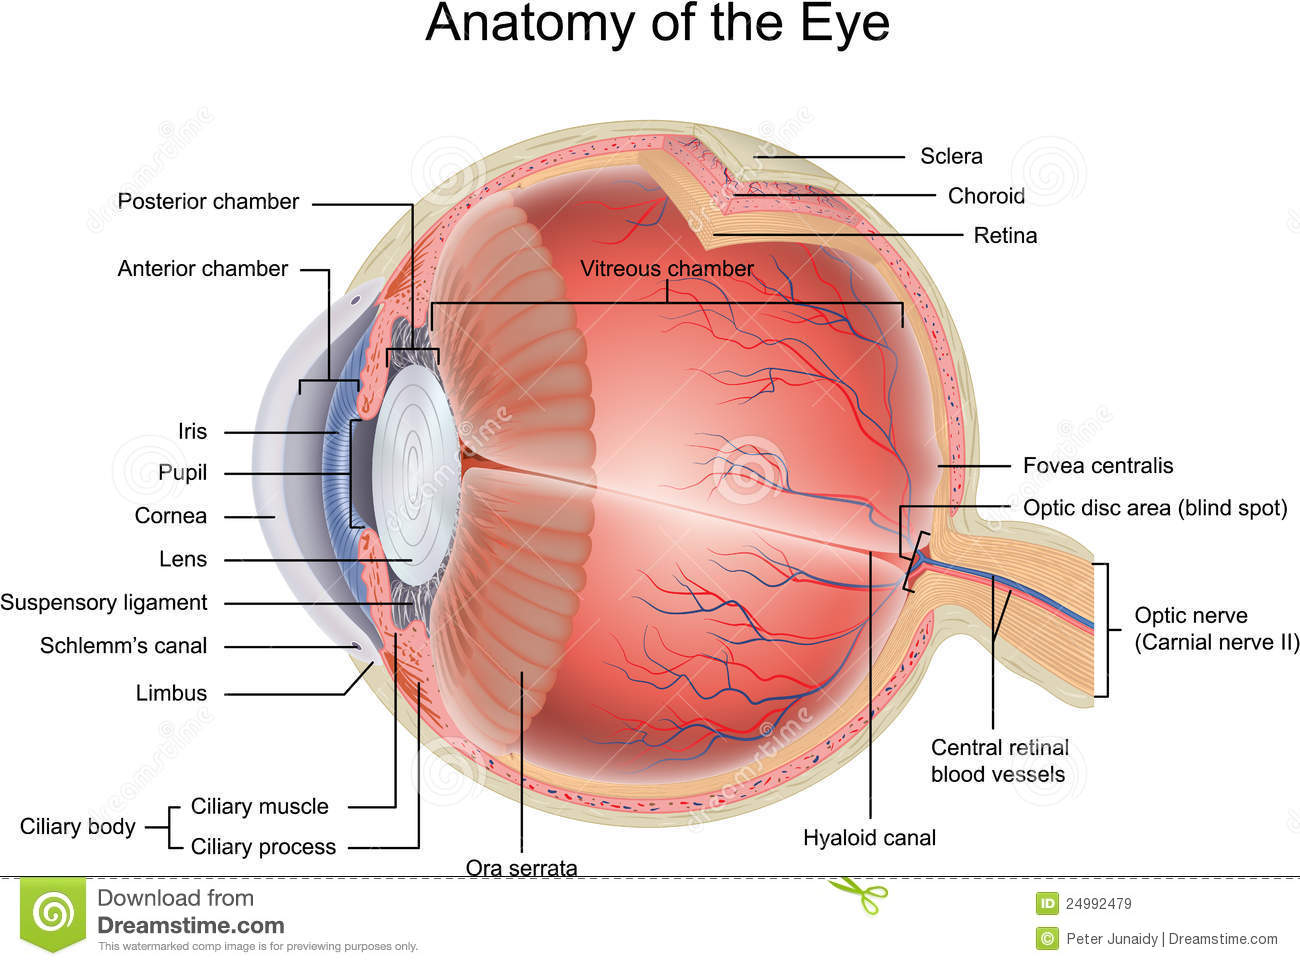 Anatomy Of The Eye Royalty Free Stock Images - Image: 24992479